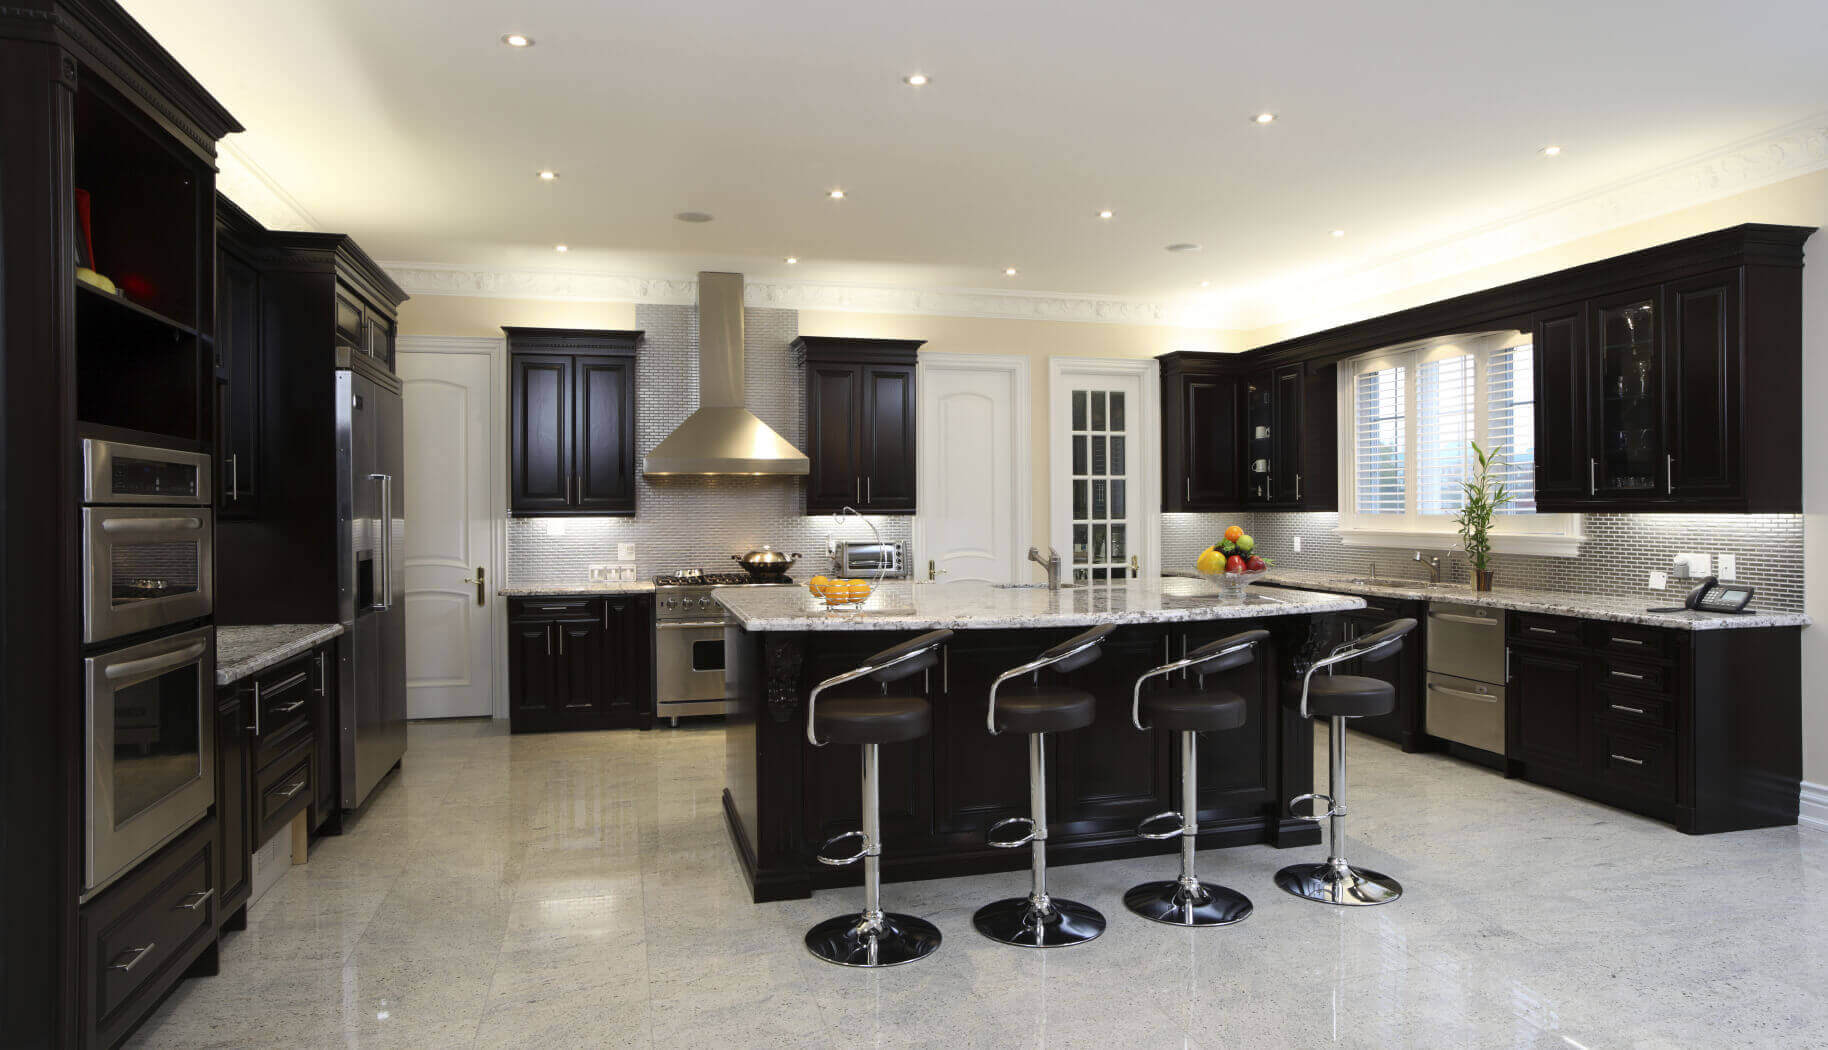 A contemporary black kitchen in a sleek building features glamorous shiny countertops, crisp white walls with black shelves and cabinets. This black kitchen design idea blends style and utility for a space that is not only cutting—edge but inviting